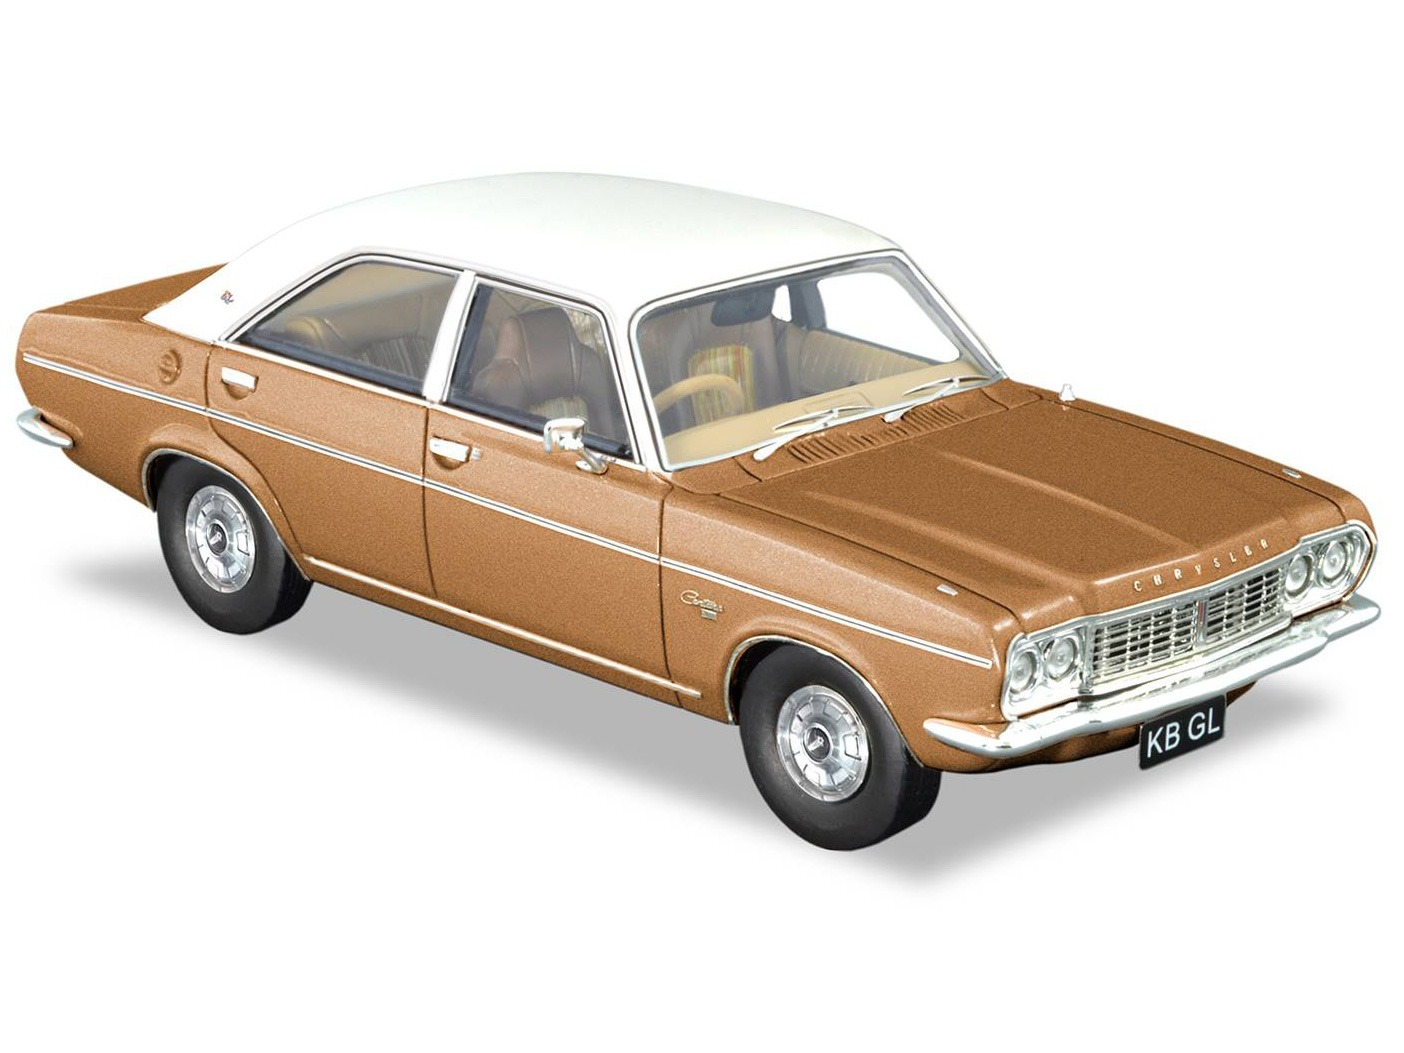 1976 KB Chrysler Centura GL – Topaz Gold / Light Roof